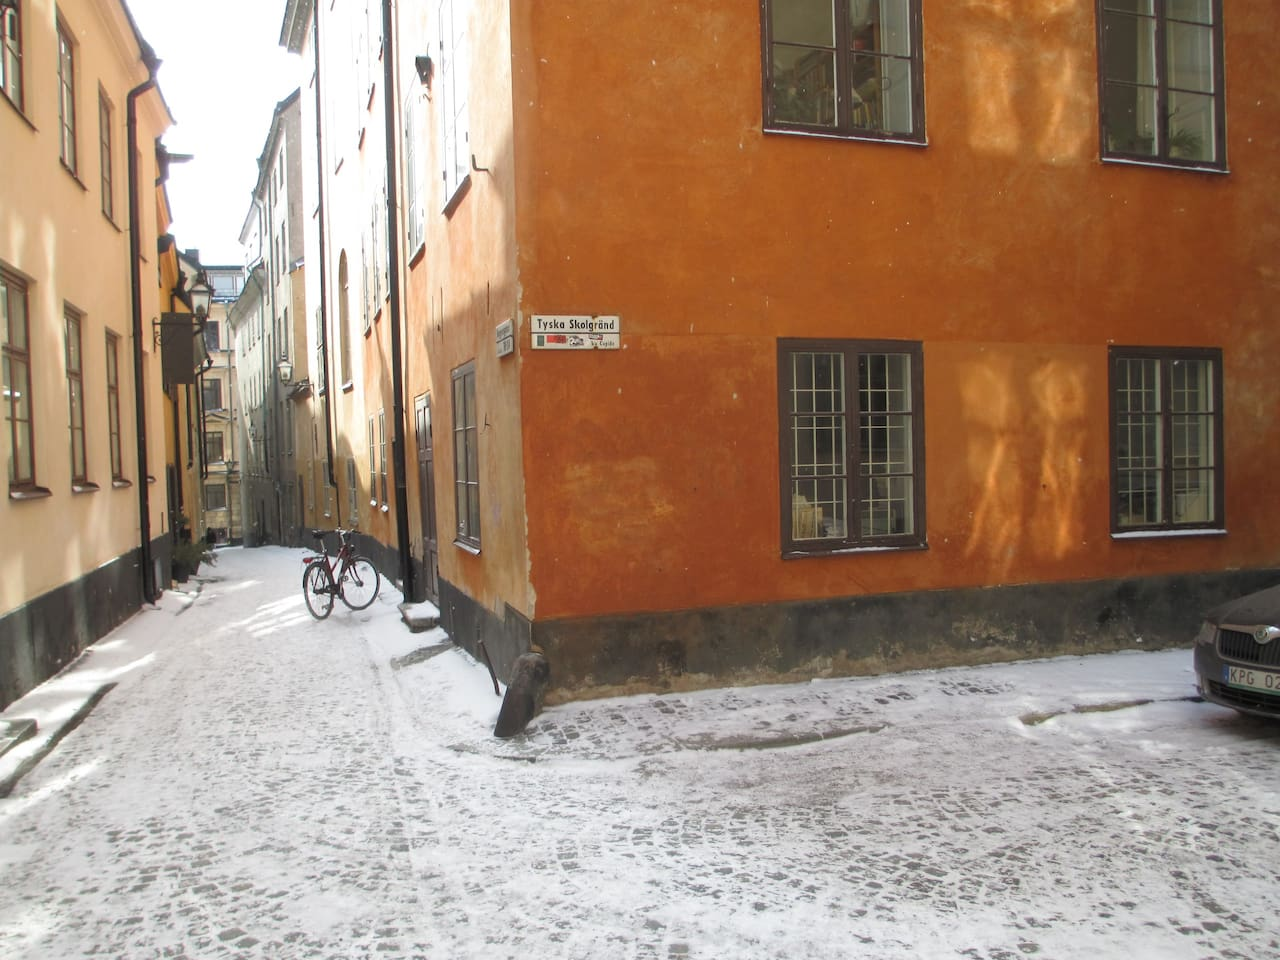 The room is located on the ground floor, with the entrance door directly from the street, and three windows facing two directions. This is a quiet street in the middle of the Old Town.